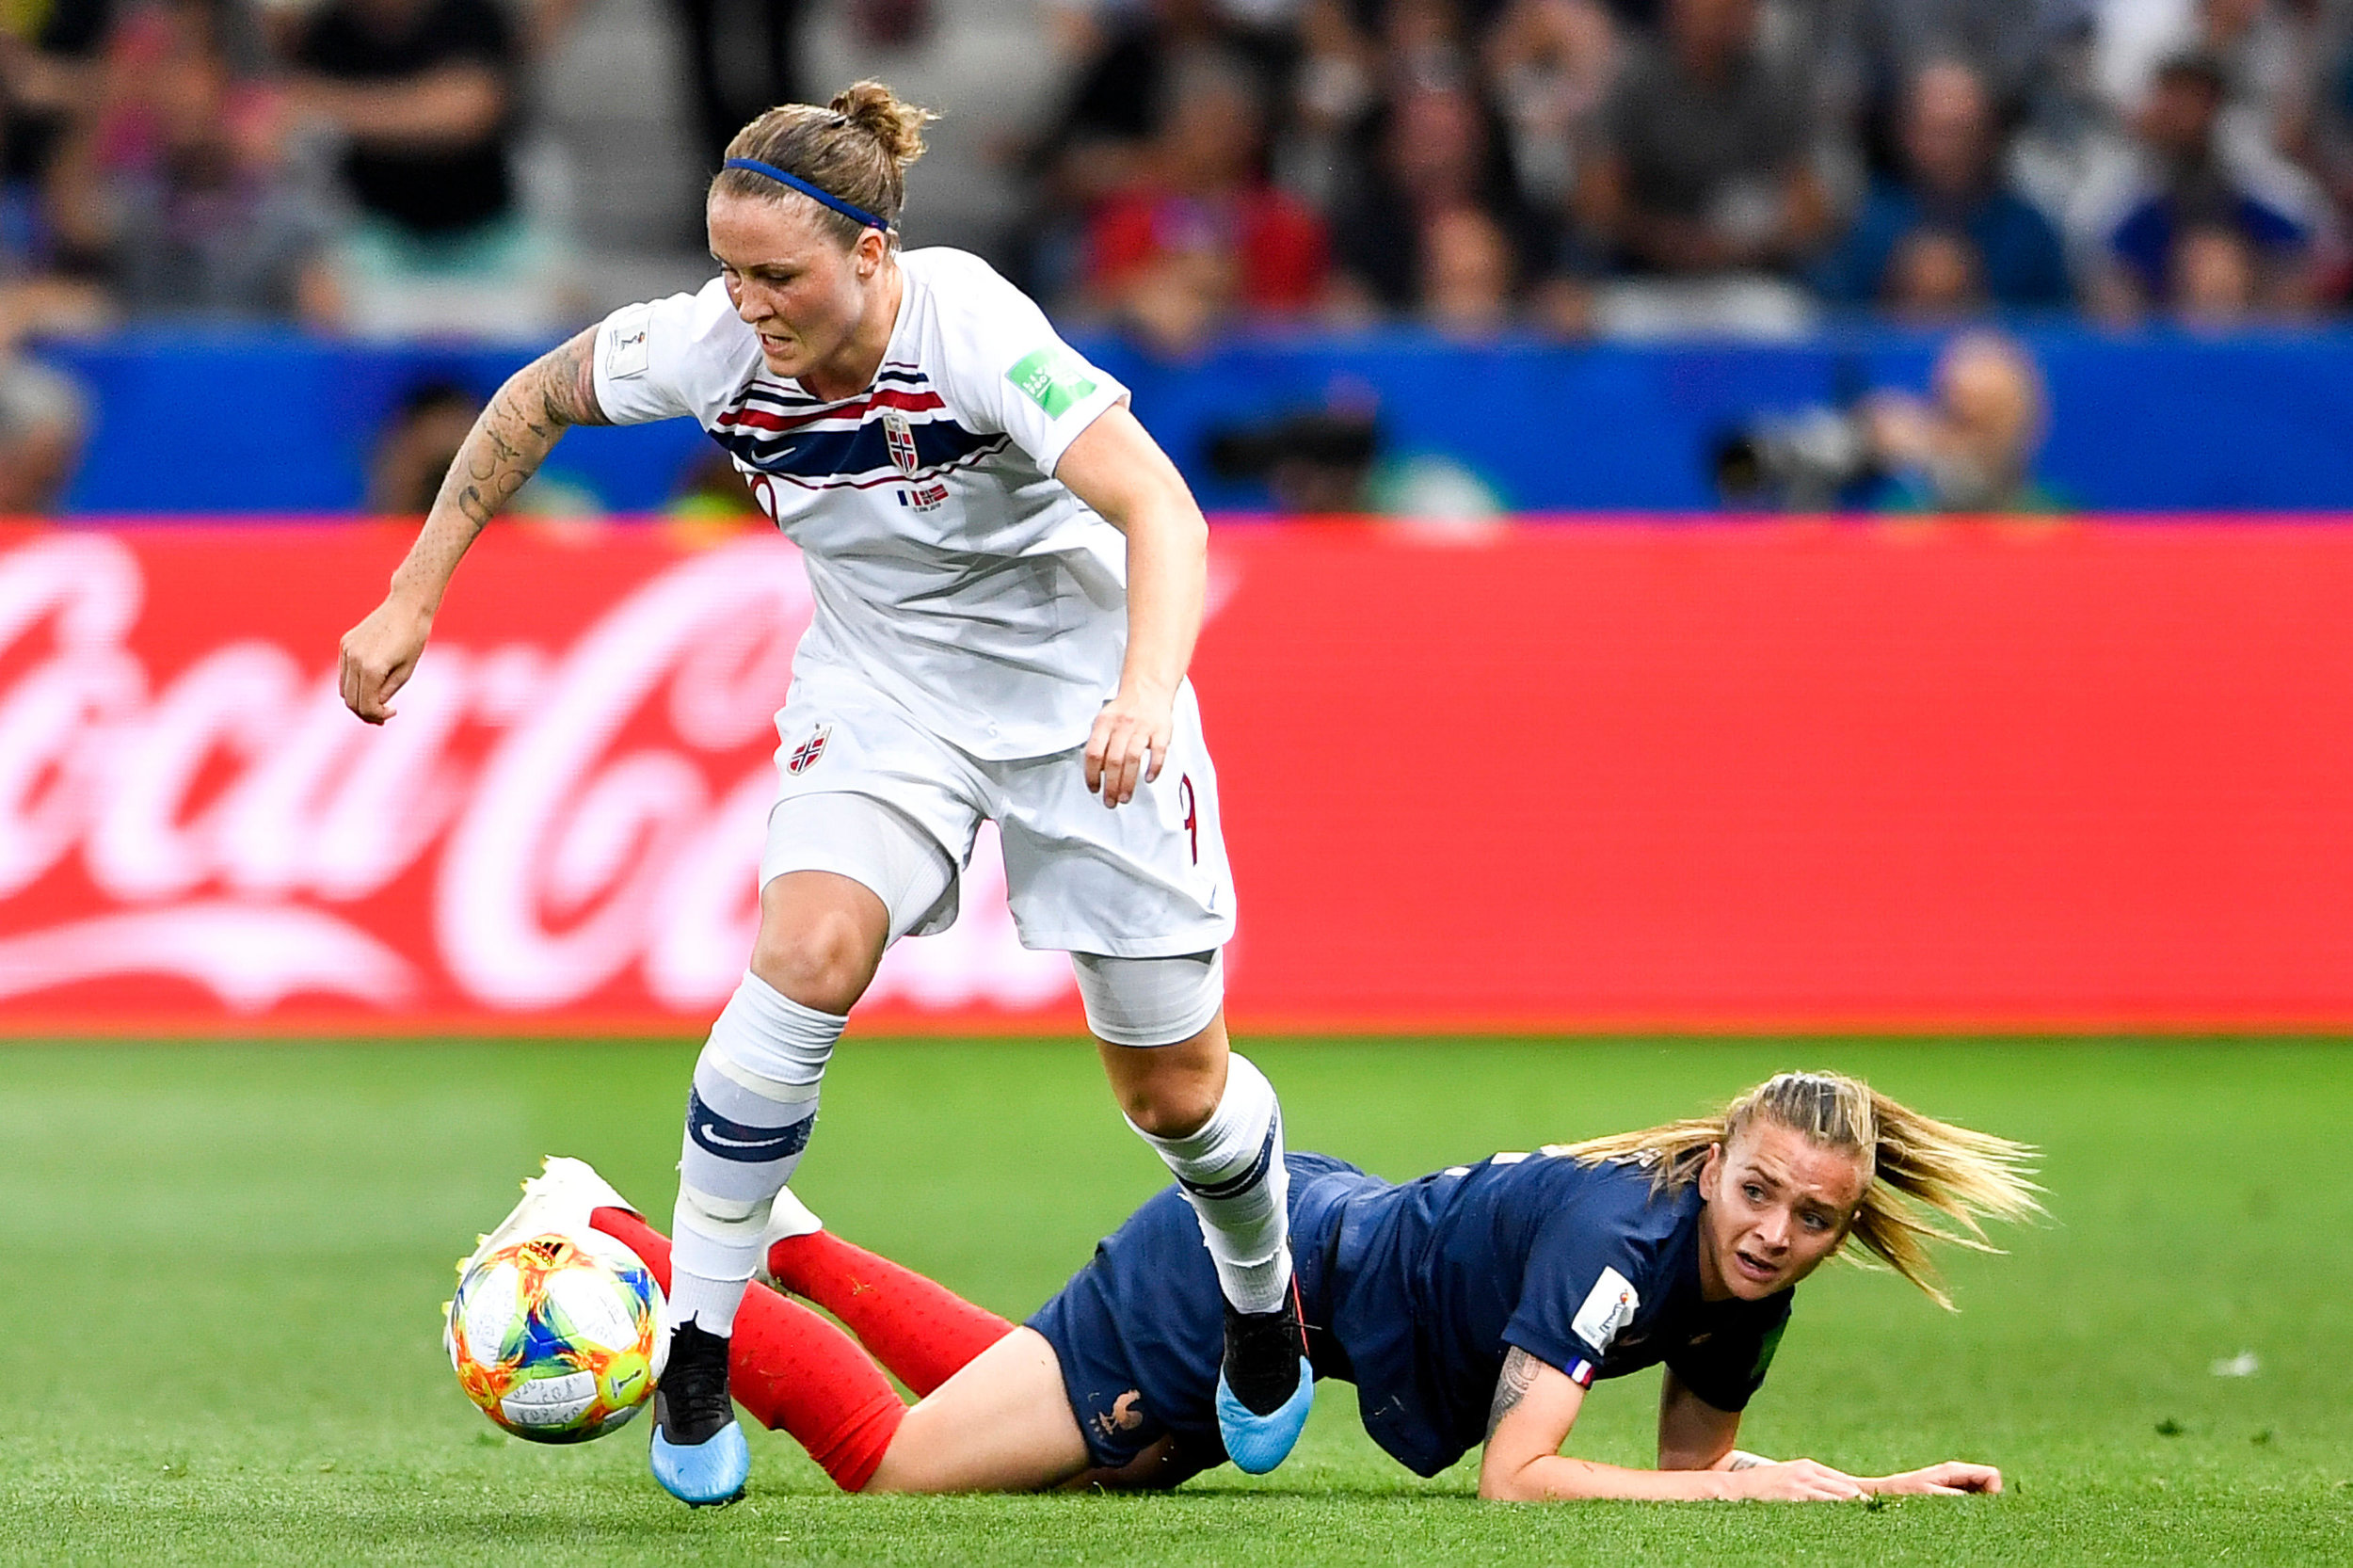 Isabell Herlovsen (L) of Norway view with Marion Torrent of France during the group A match between France and Norway at the 2019 FIFA Women's World Cup in Nice, France on June 12, 2019.